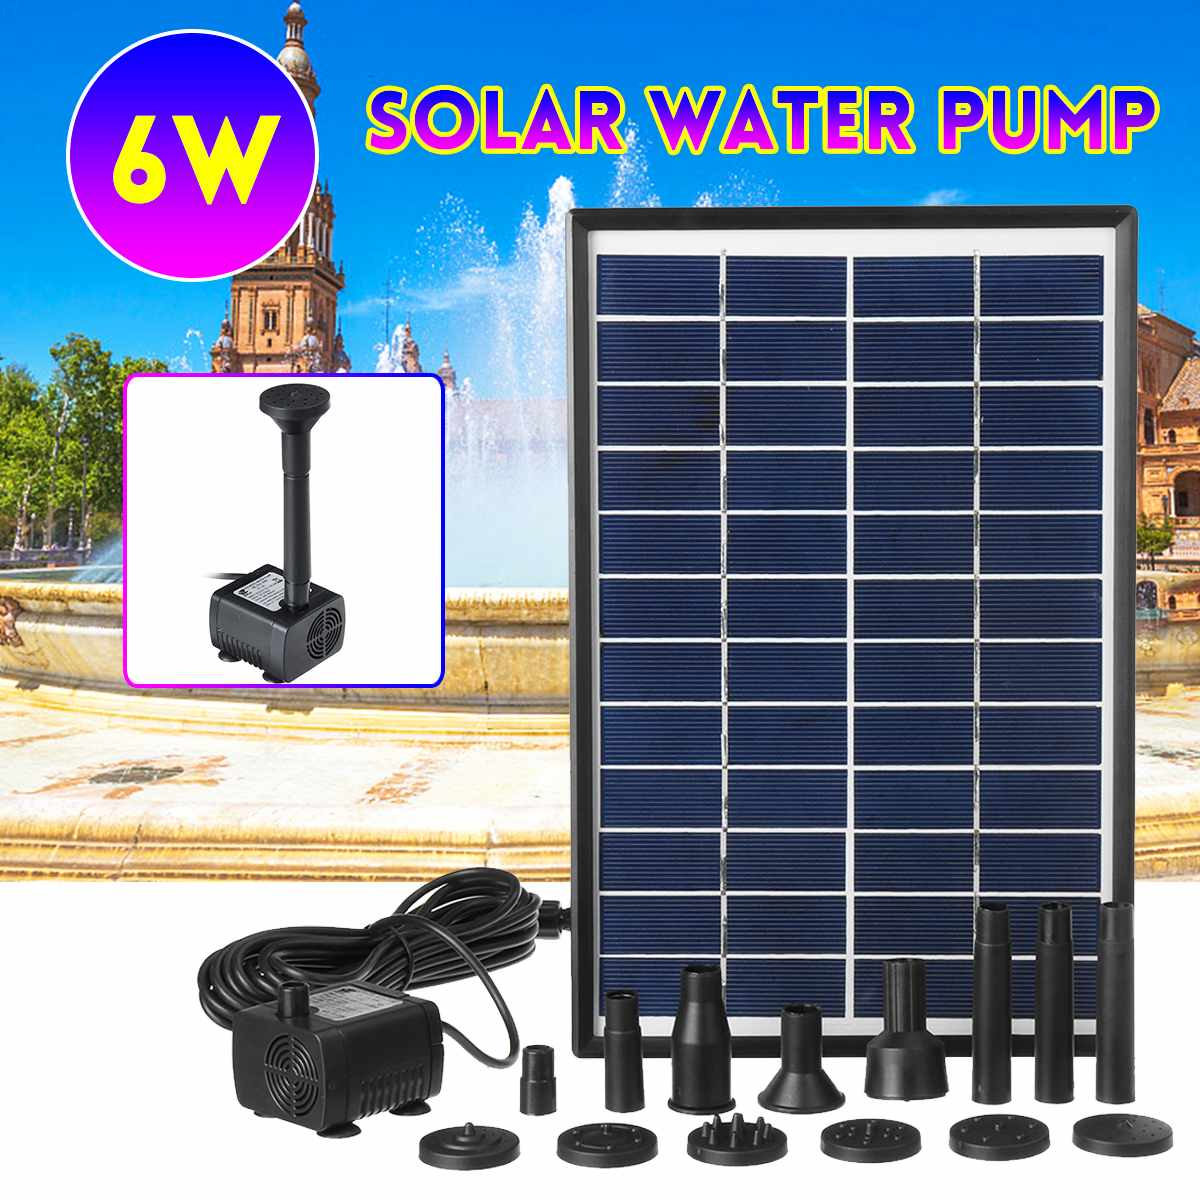 6W Solar Power Panel Water Pump 500L/H Garden Landscape Floating Fountain Artificial Outdoor Fountain Home Decoration Pump Set